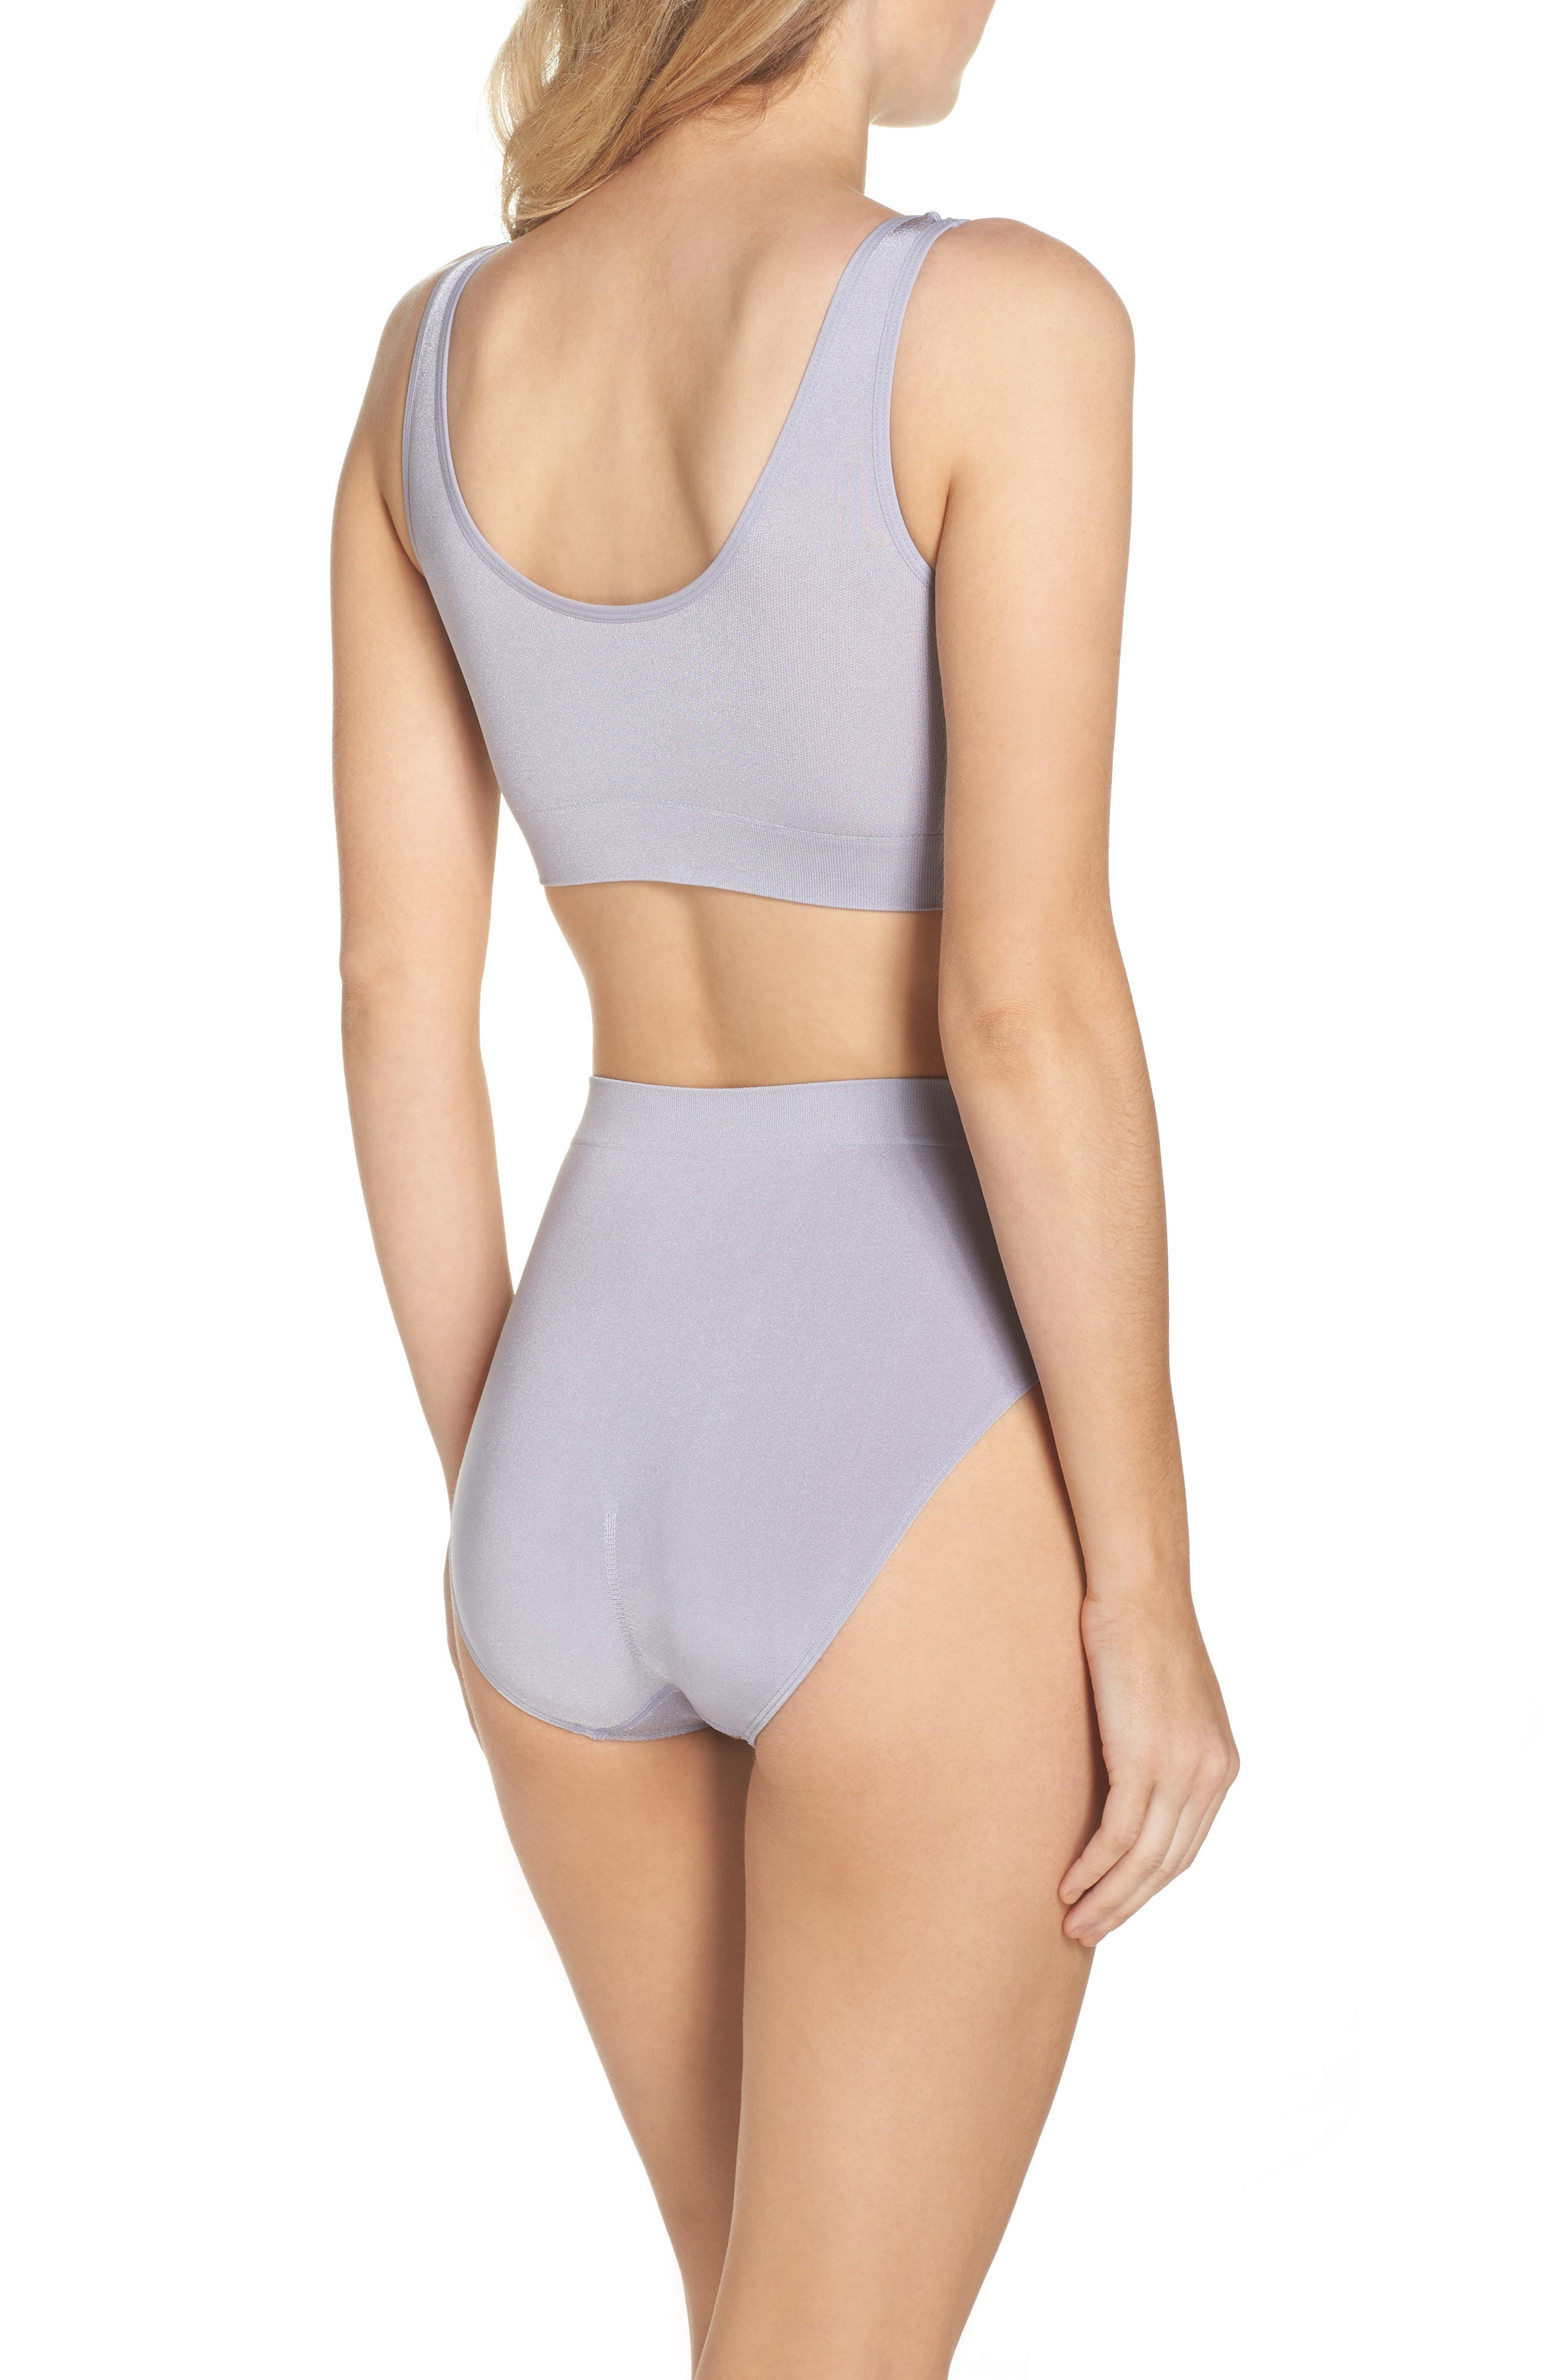 WACOAL,                             B Smooth Seamless Bralette,                             Alternate thumbnail 9, color,                             038